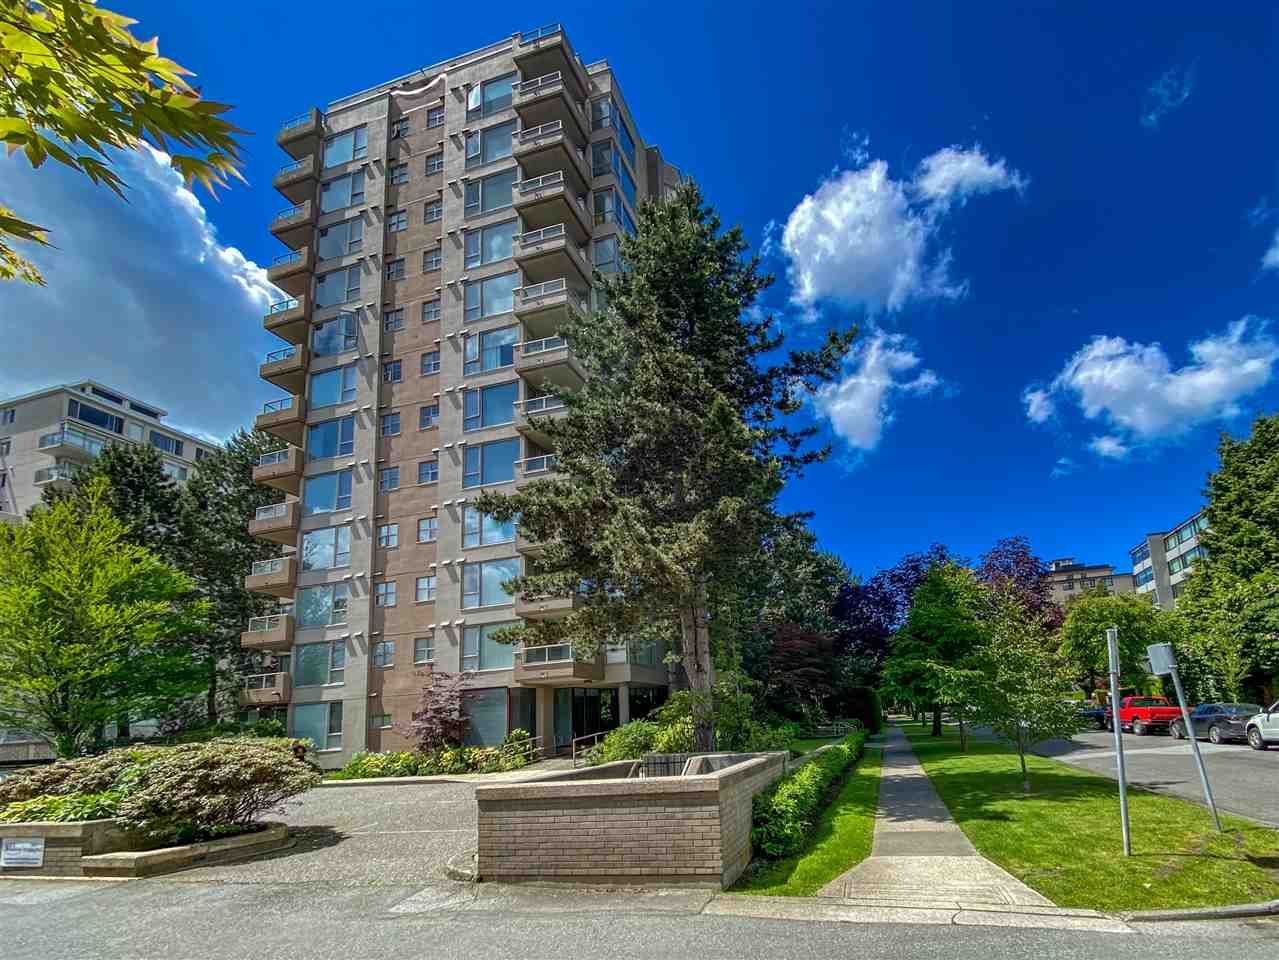 """Main Photo: 601 2108 W 38TH Avenue in Vancouver: Kerrisdale Condo for sale in """"THE WILSHIRE"""" (Vancouver West)  : MLS®# R2577338"""